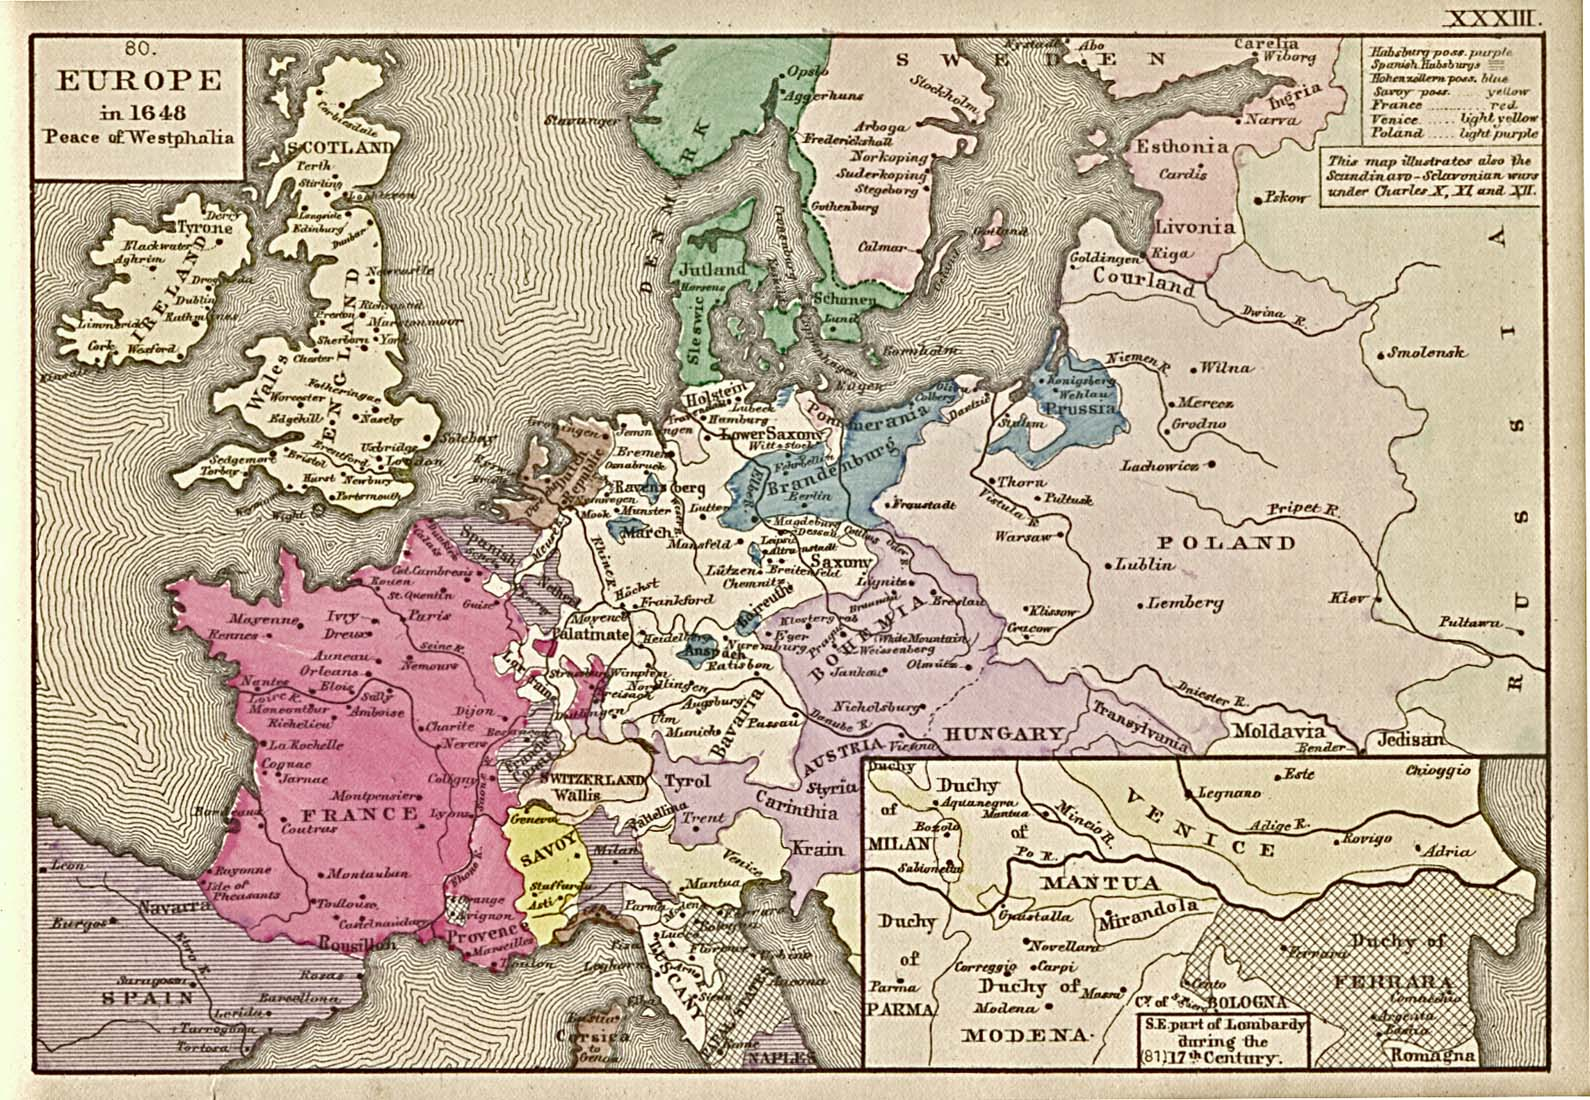 Reisenett historical maps of europe europe in 1648 peace of westphalia publicscrutiny Image collections